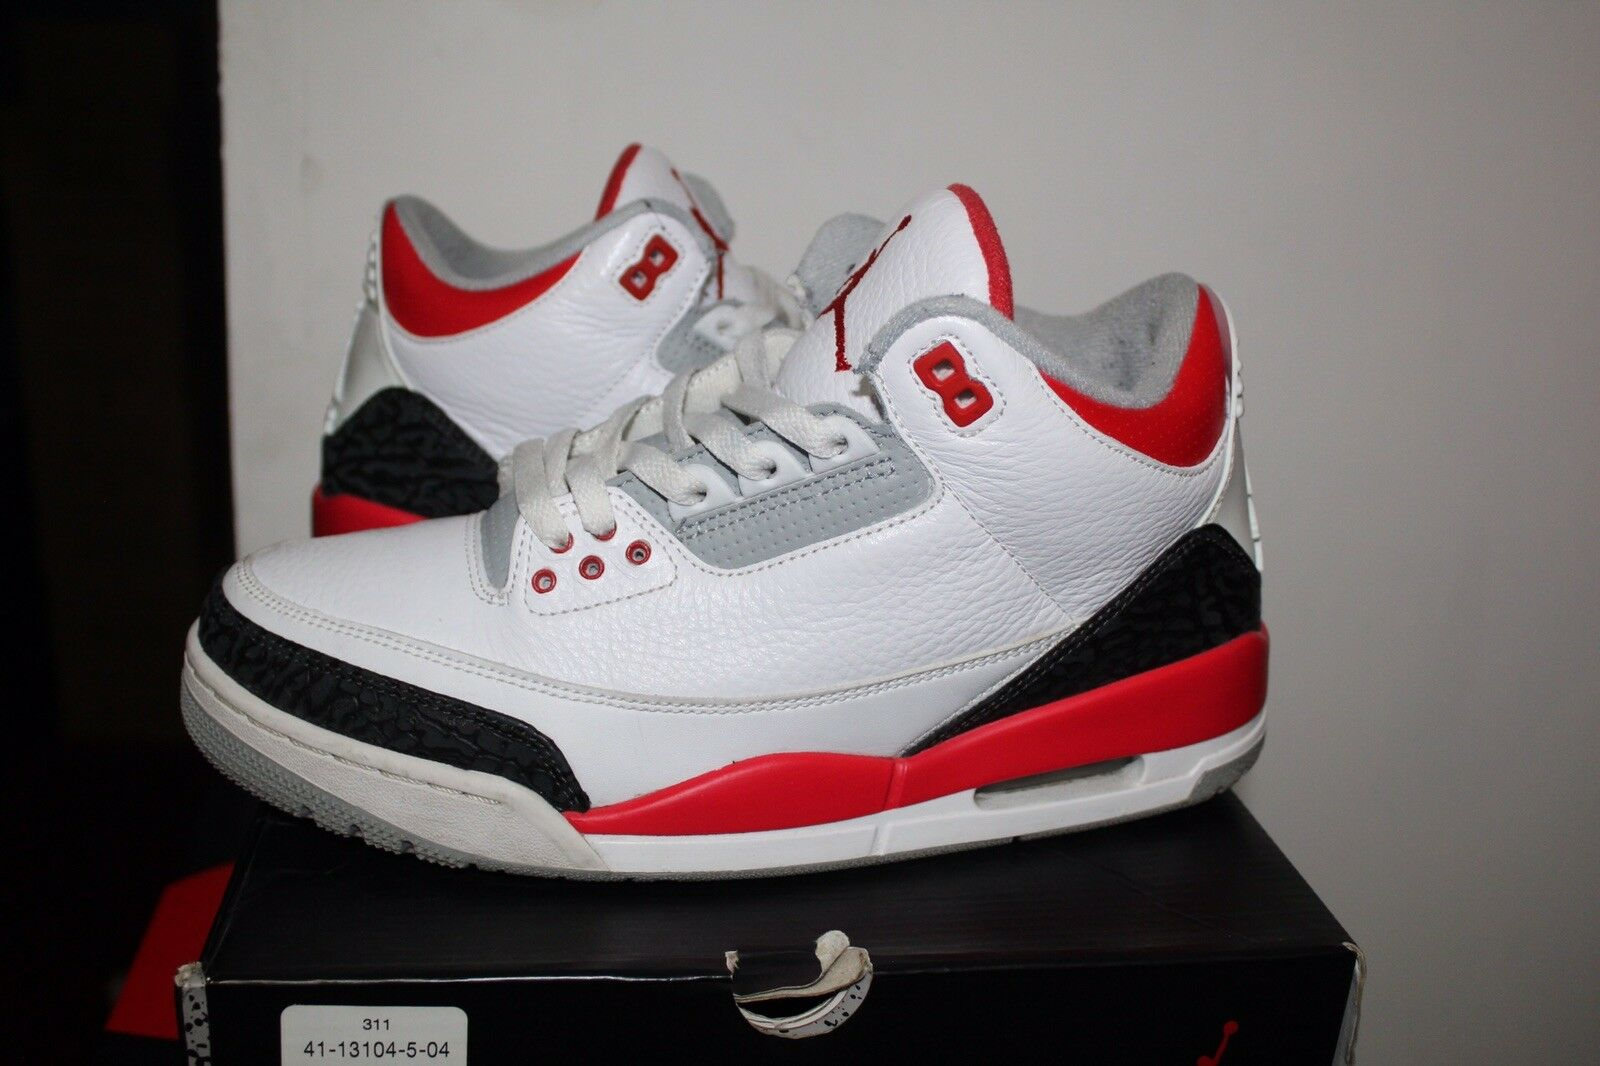 Air Jordan retro III 3 WHITE FIRE RED 2018 size 9 100% AUTHENTIC